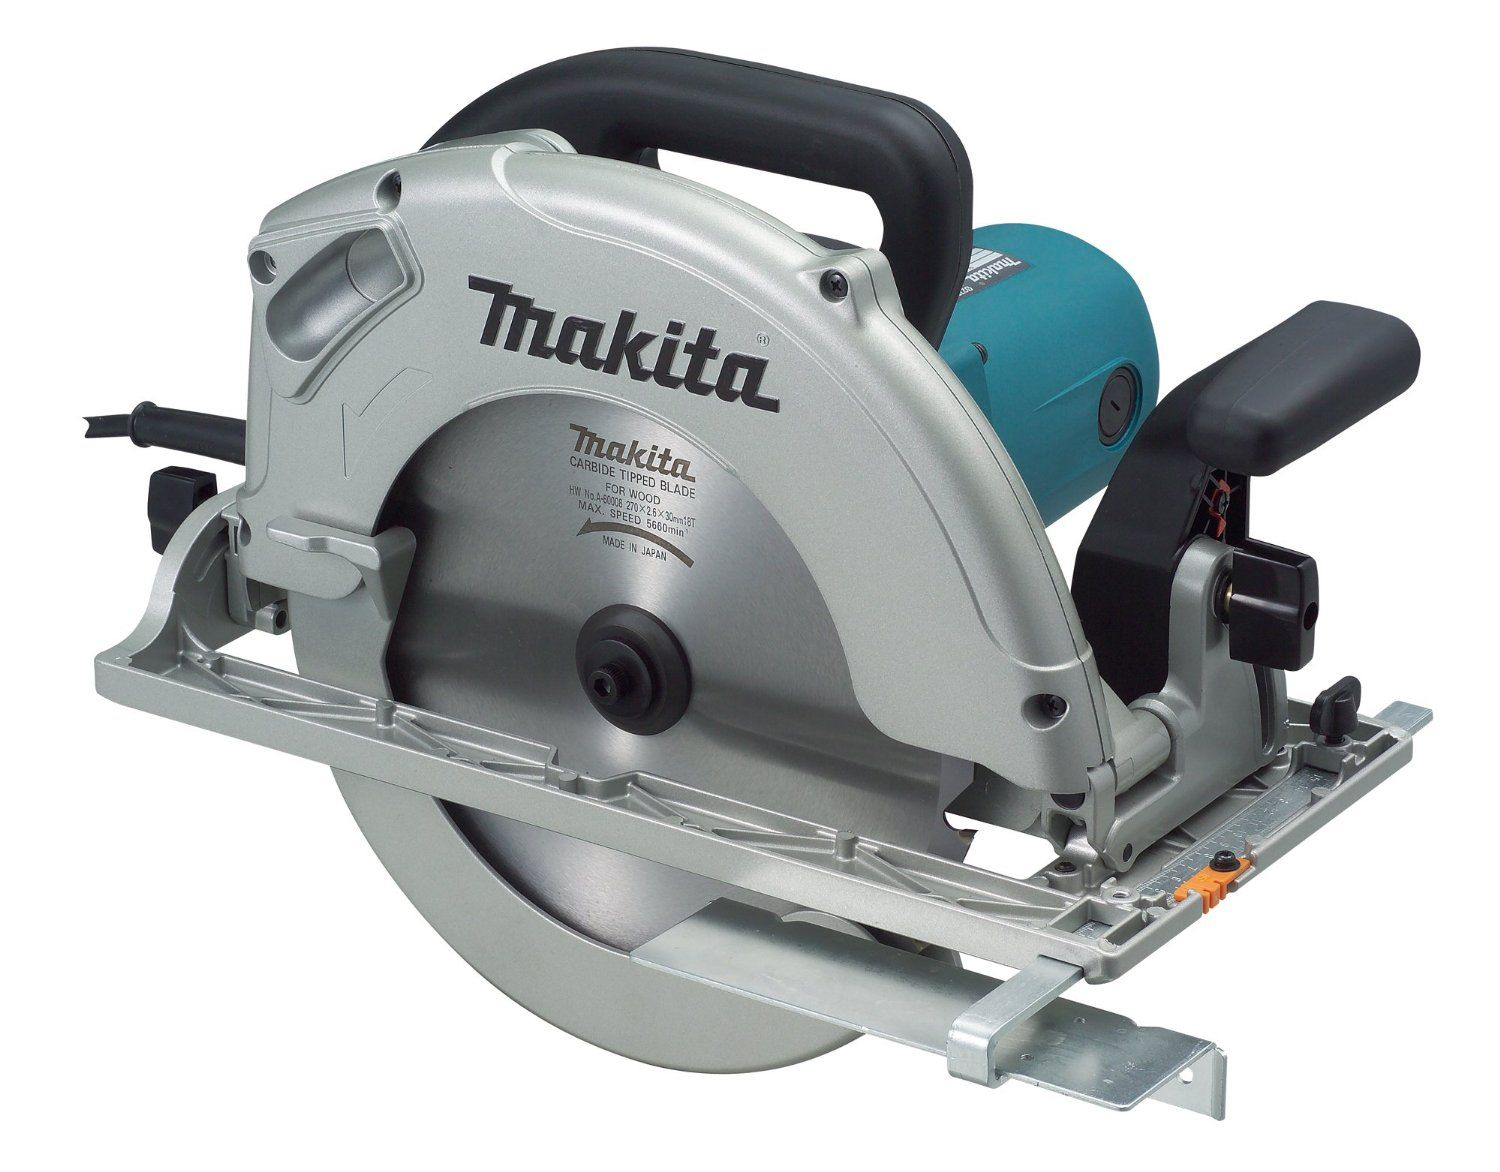 Makita 5104 14 Amp 10 1 4 Inch Circular Saw You Can Get Additional Details At The Image Link Makita Circular Saw Circular